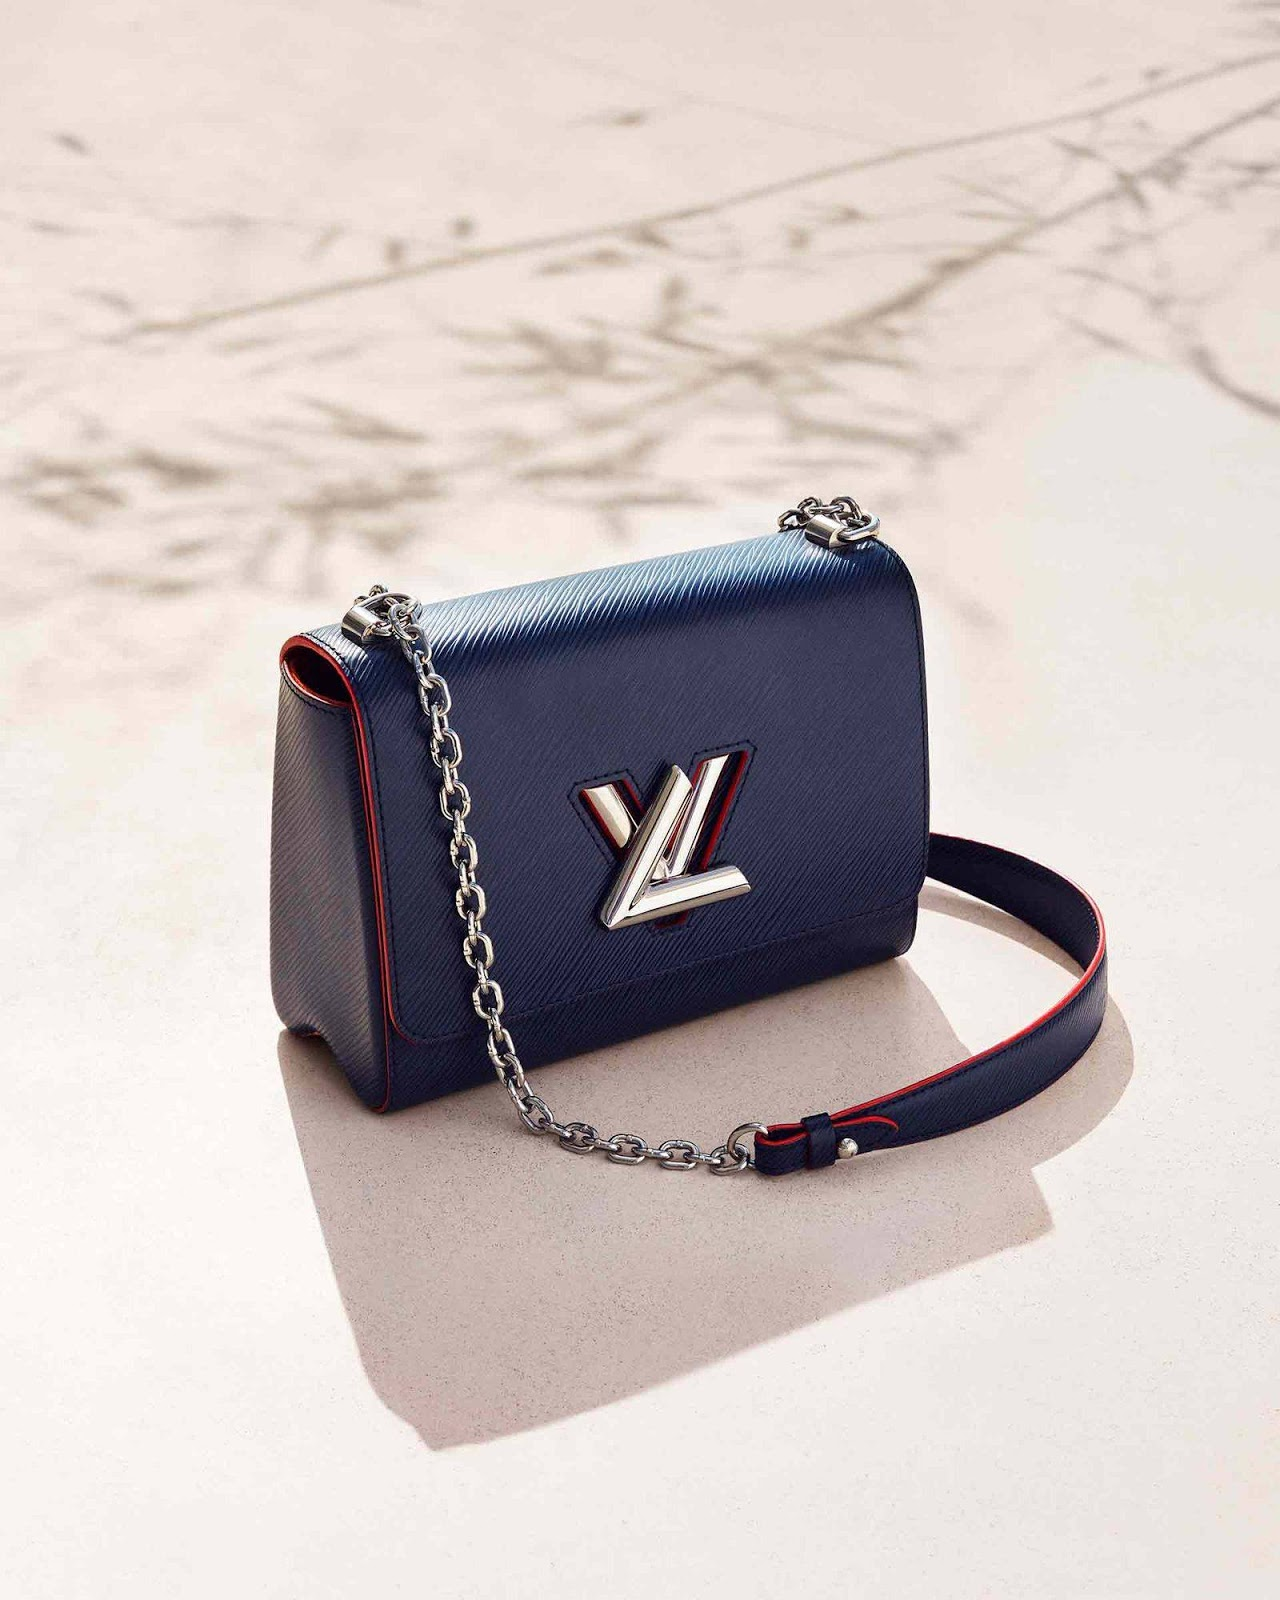 Louis Vuitton Cruise 2018 Campaign